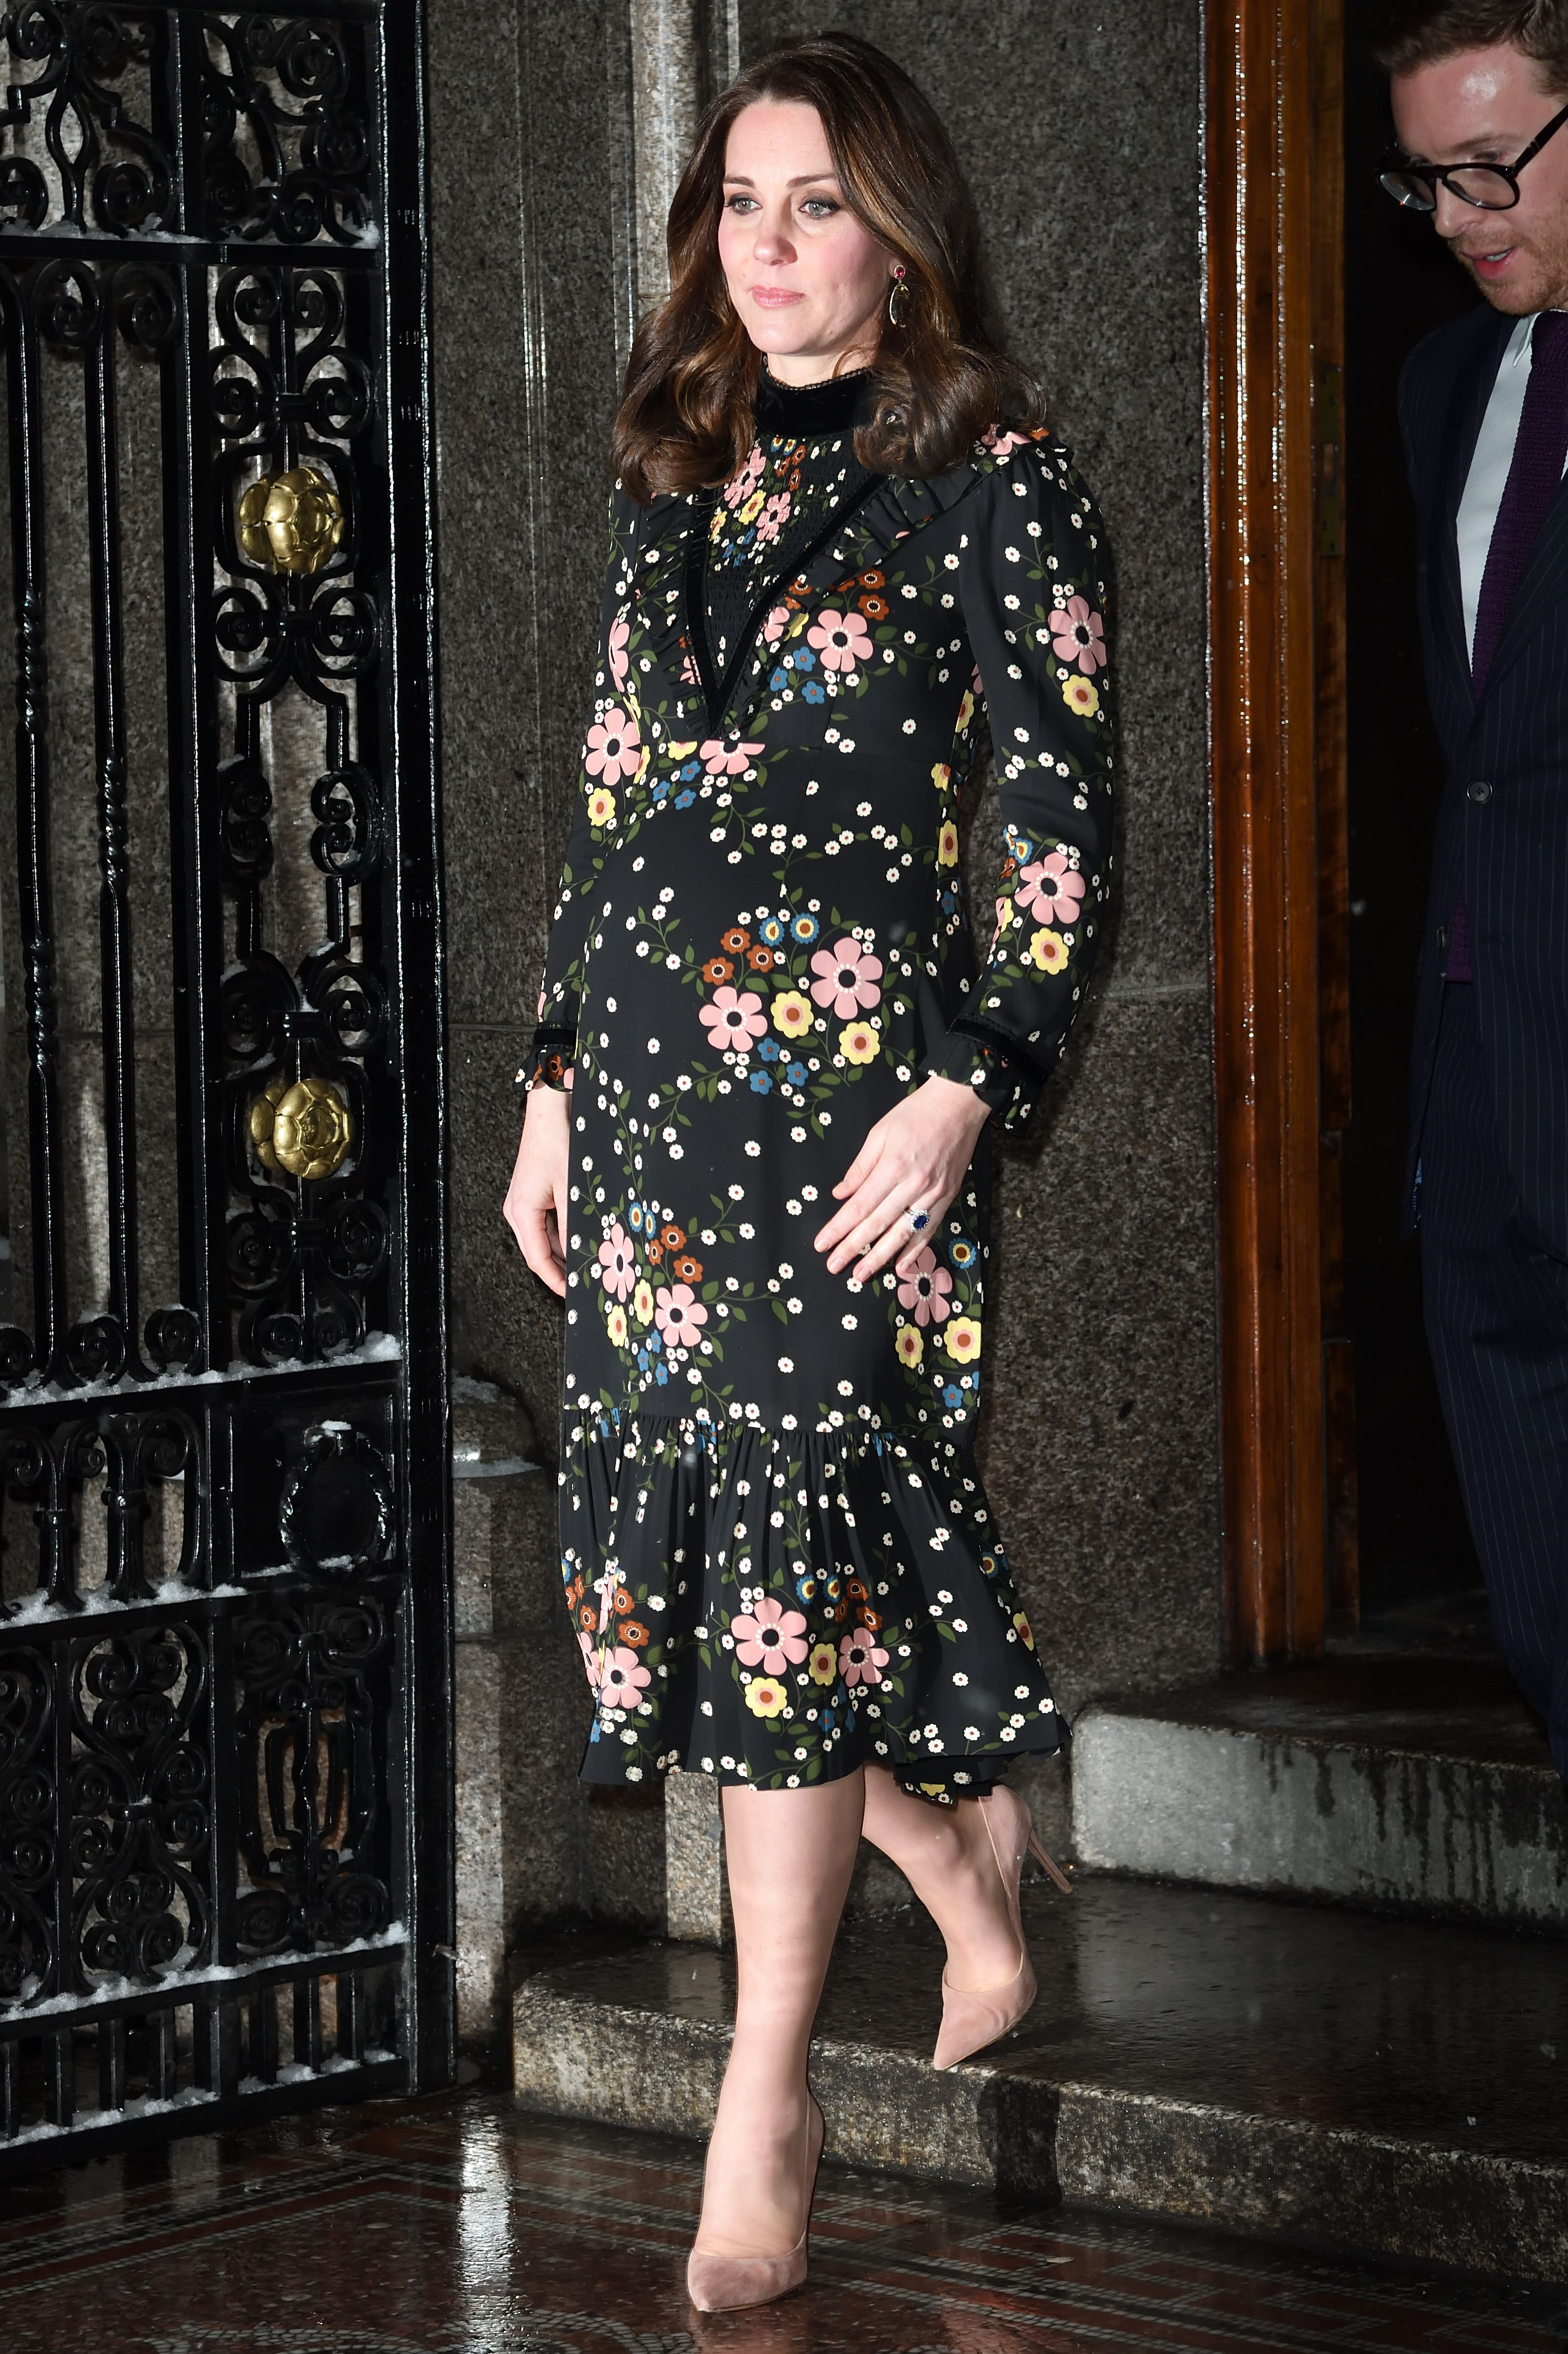 The Duchess of Cambridge's maternity style – Kate ...